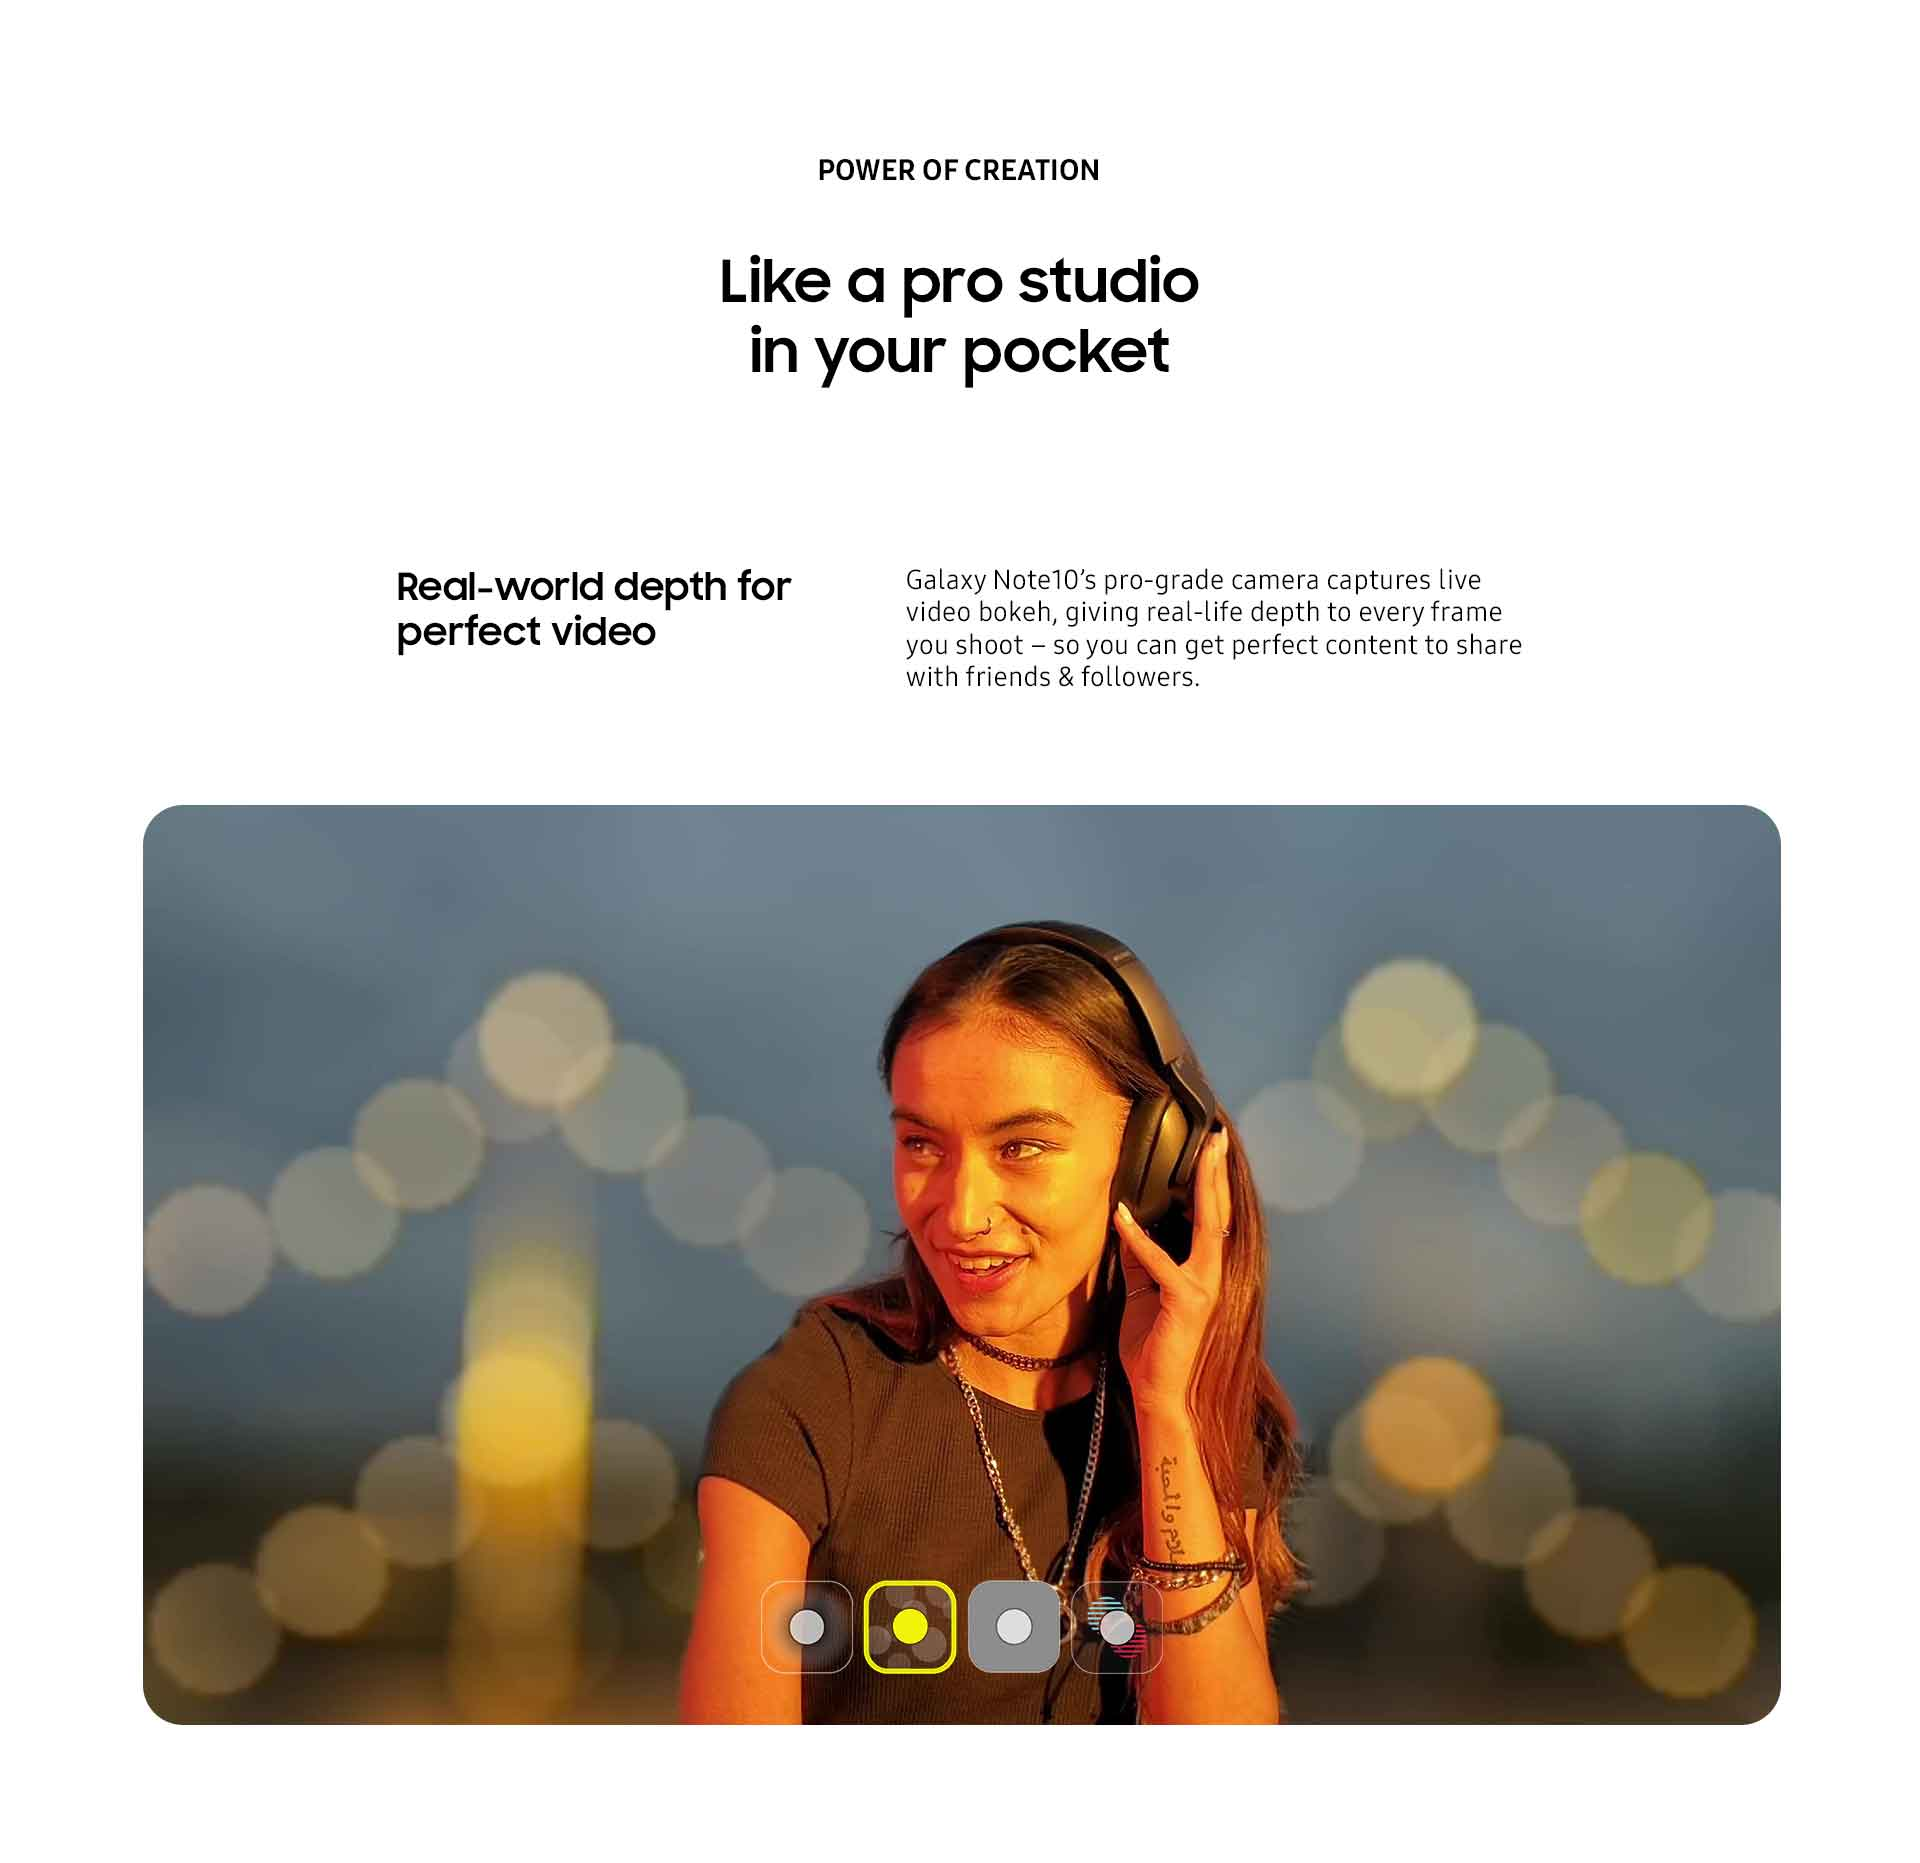 Galaxy Note10's pro-grade camera captures live video bokeh, giving real-life depth to every frame you shoot.